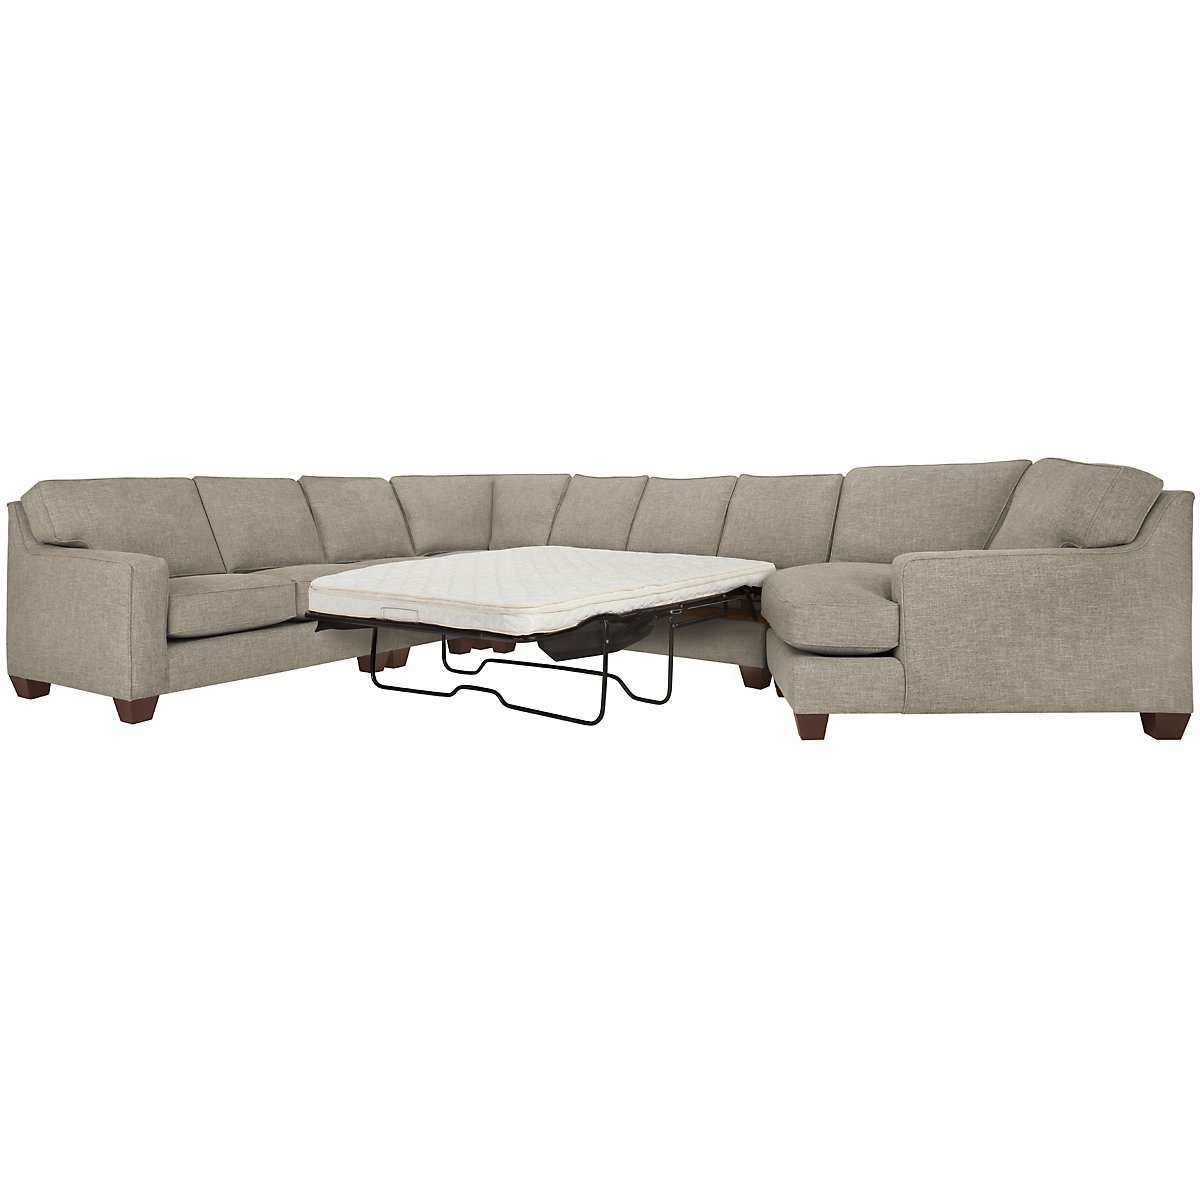 York Pewter Fabric Large Right Cuddler Innerspring Sleeper Sectional